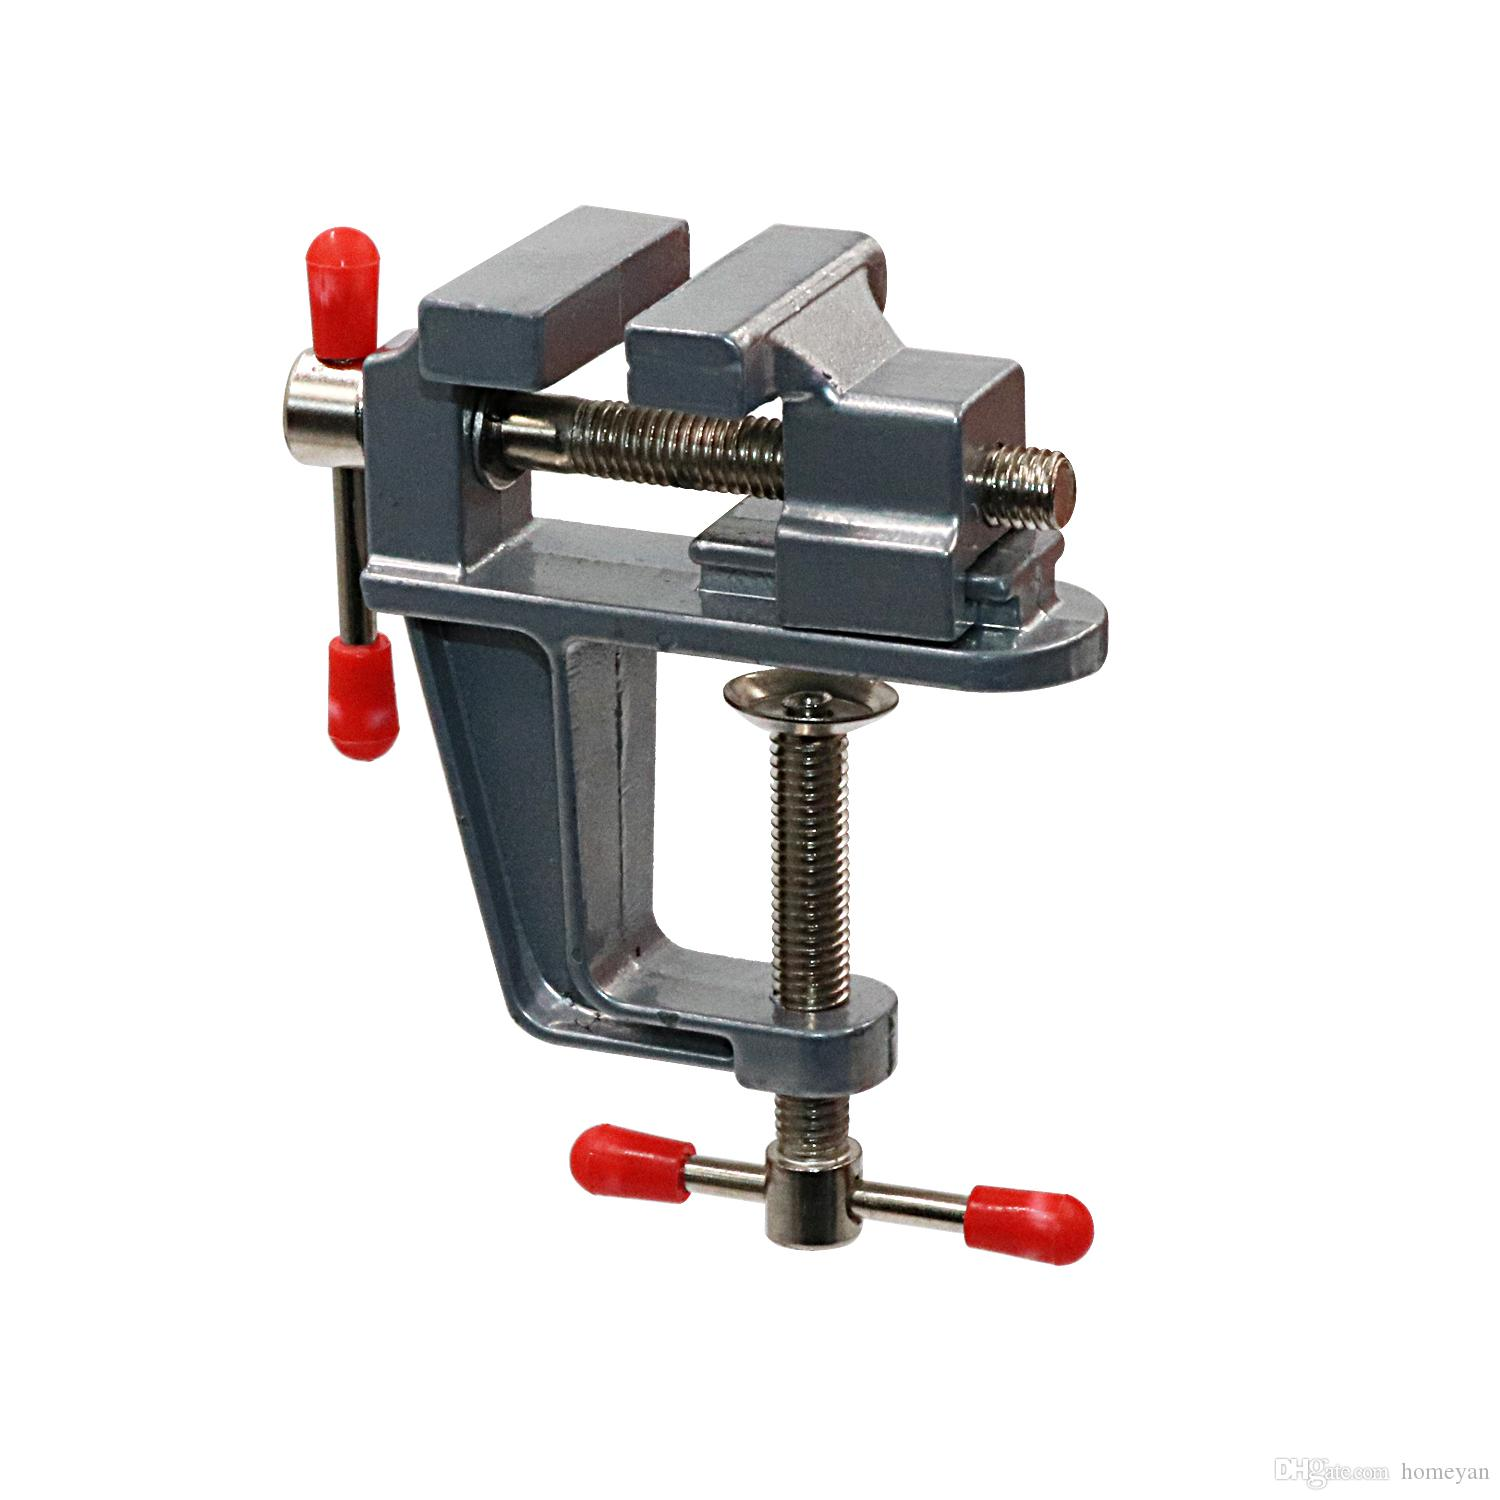 2019 Mini Table Clamp Small Bench Vice Jewelers Hobby Clamps Craft